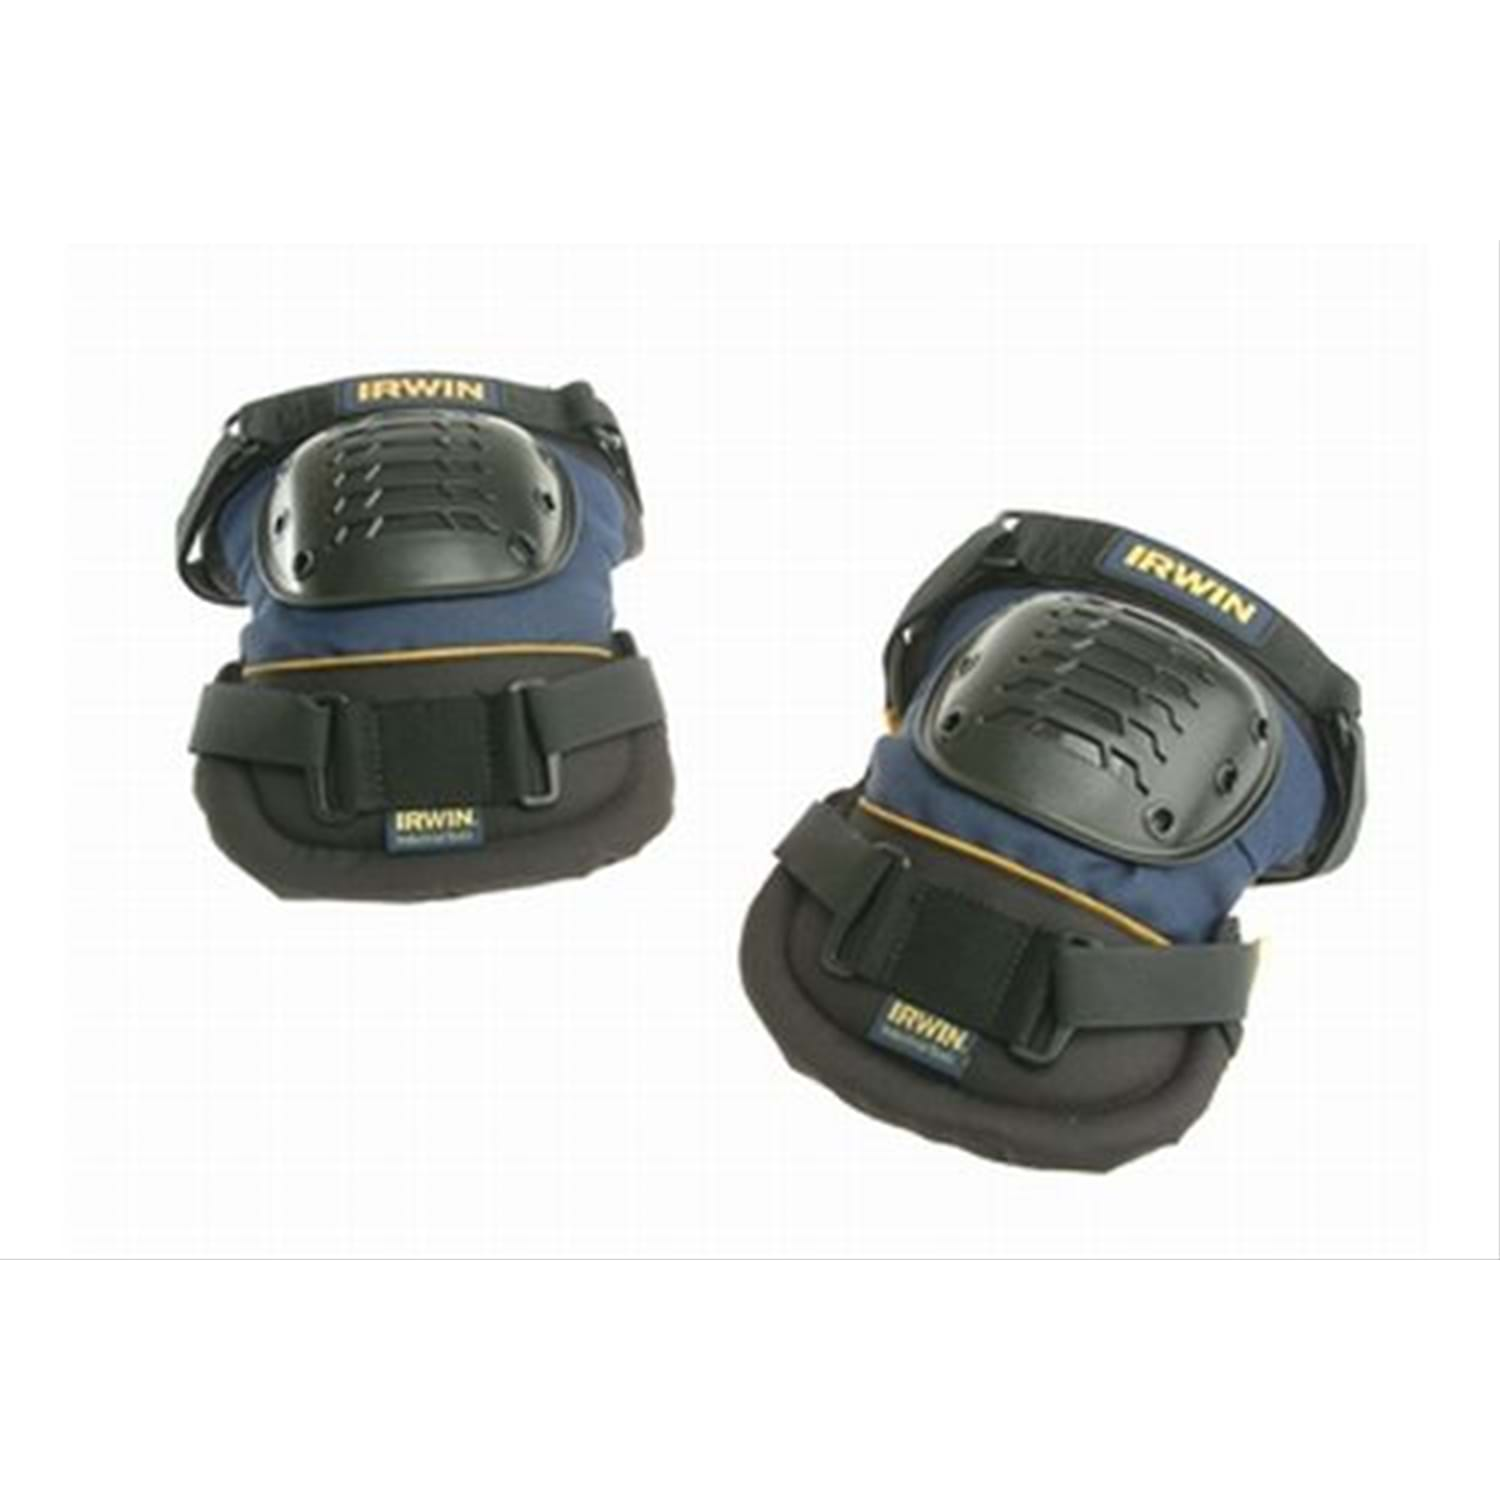 Image of Irwin Irw10503832 Knee Pads (professional Swivel)